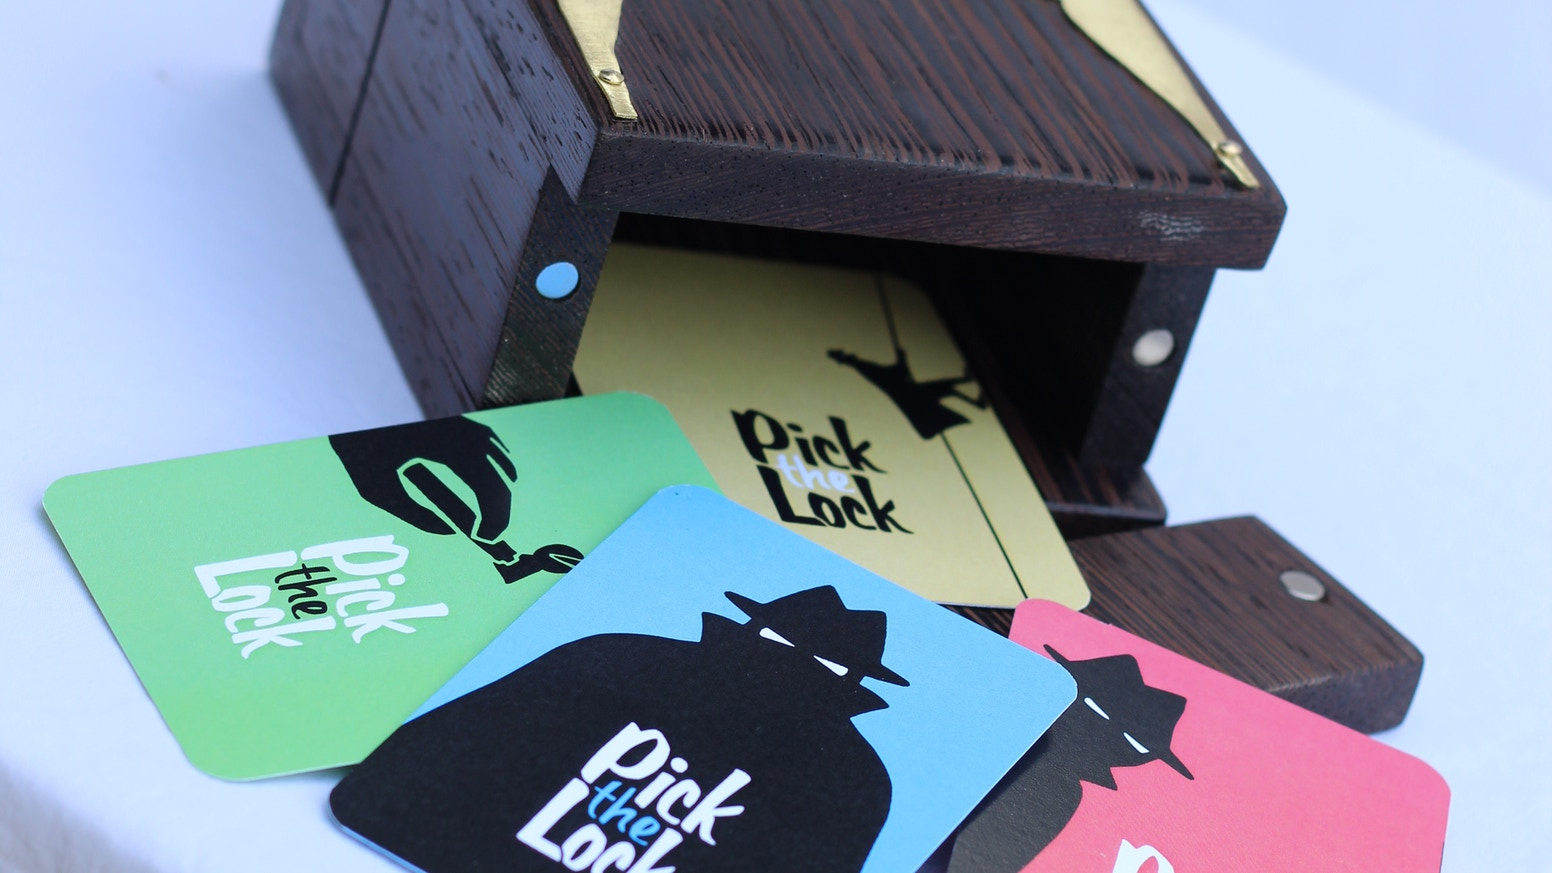 Pick the Lock is a game of chance and strategy. Attempt to obtain priceless treasures and outwit the other players.